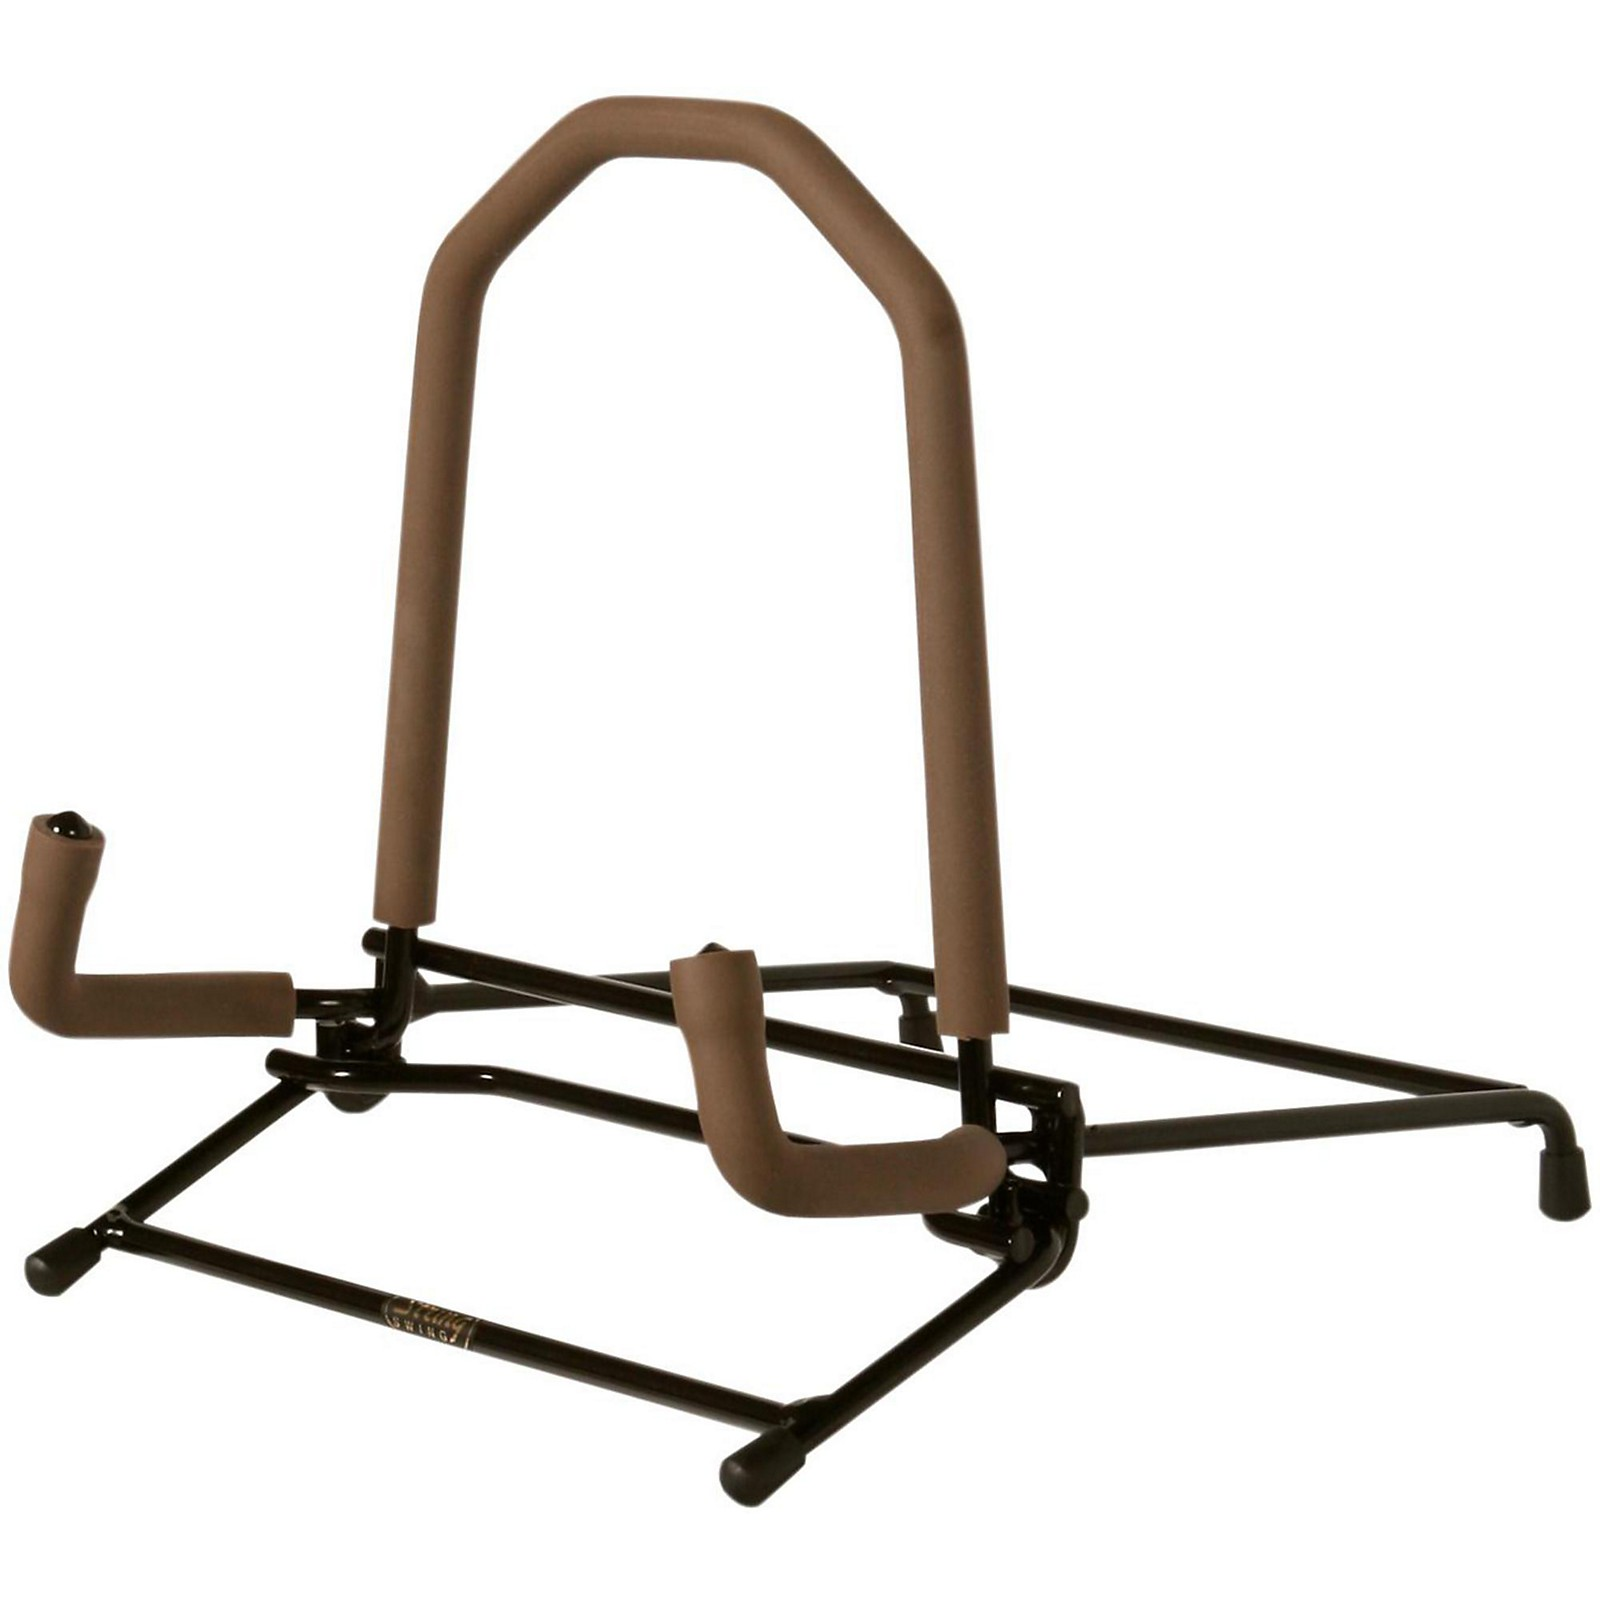 String Swing CC37 Folding Metal Guitar Floor Stand